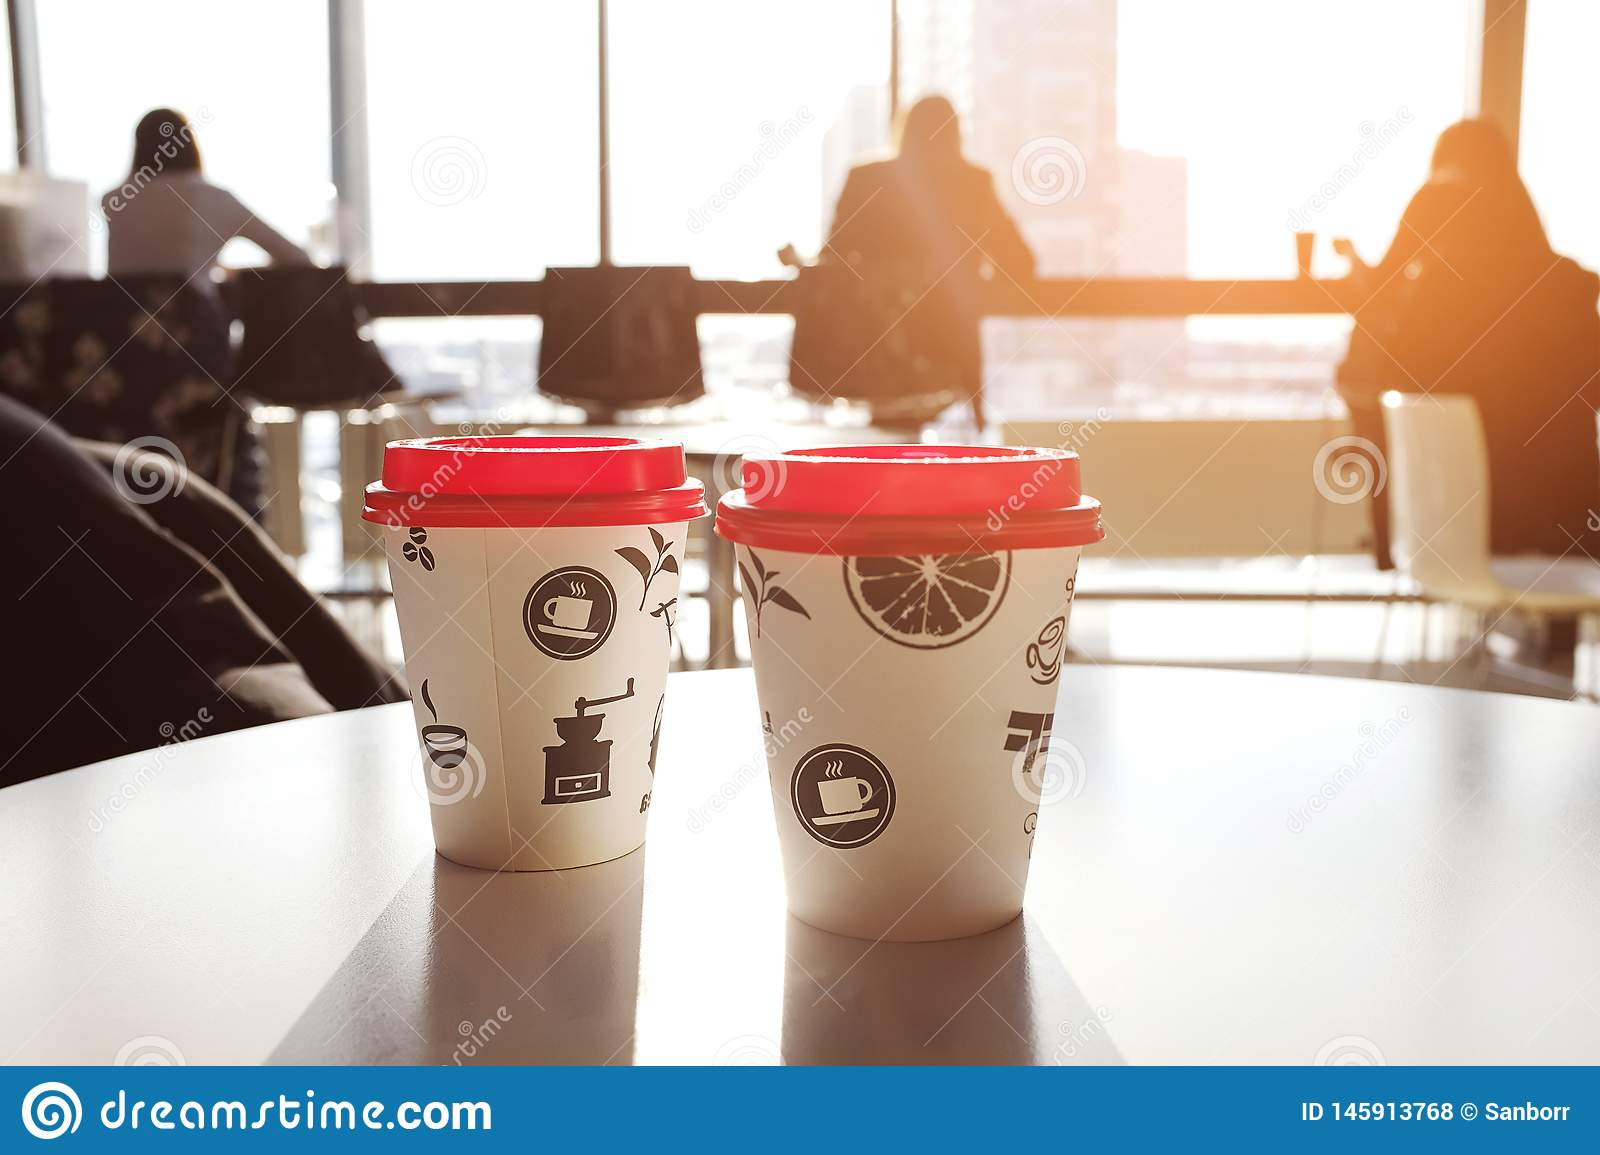 2 boxes of paper disposable cups with red led on the table in the cafe. Morning. Coffee for Breakfast. Coffee to go. The shadows